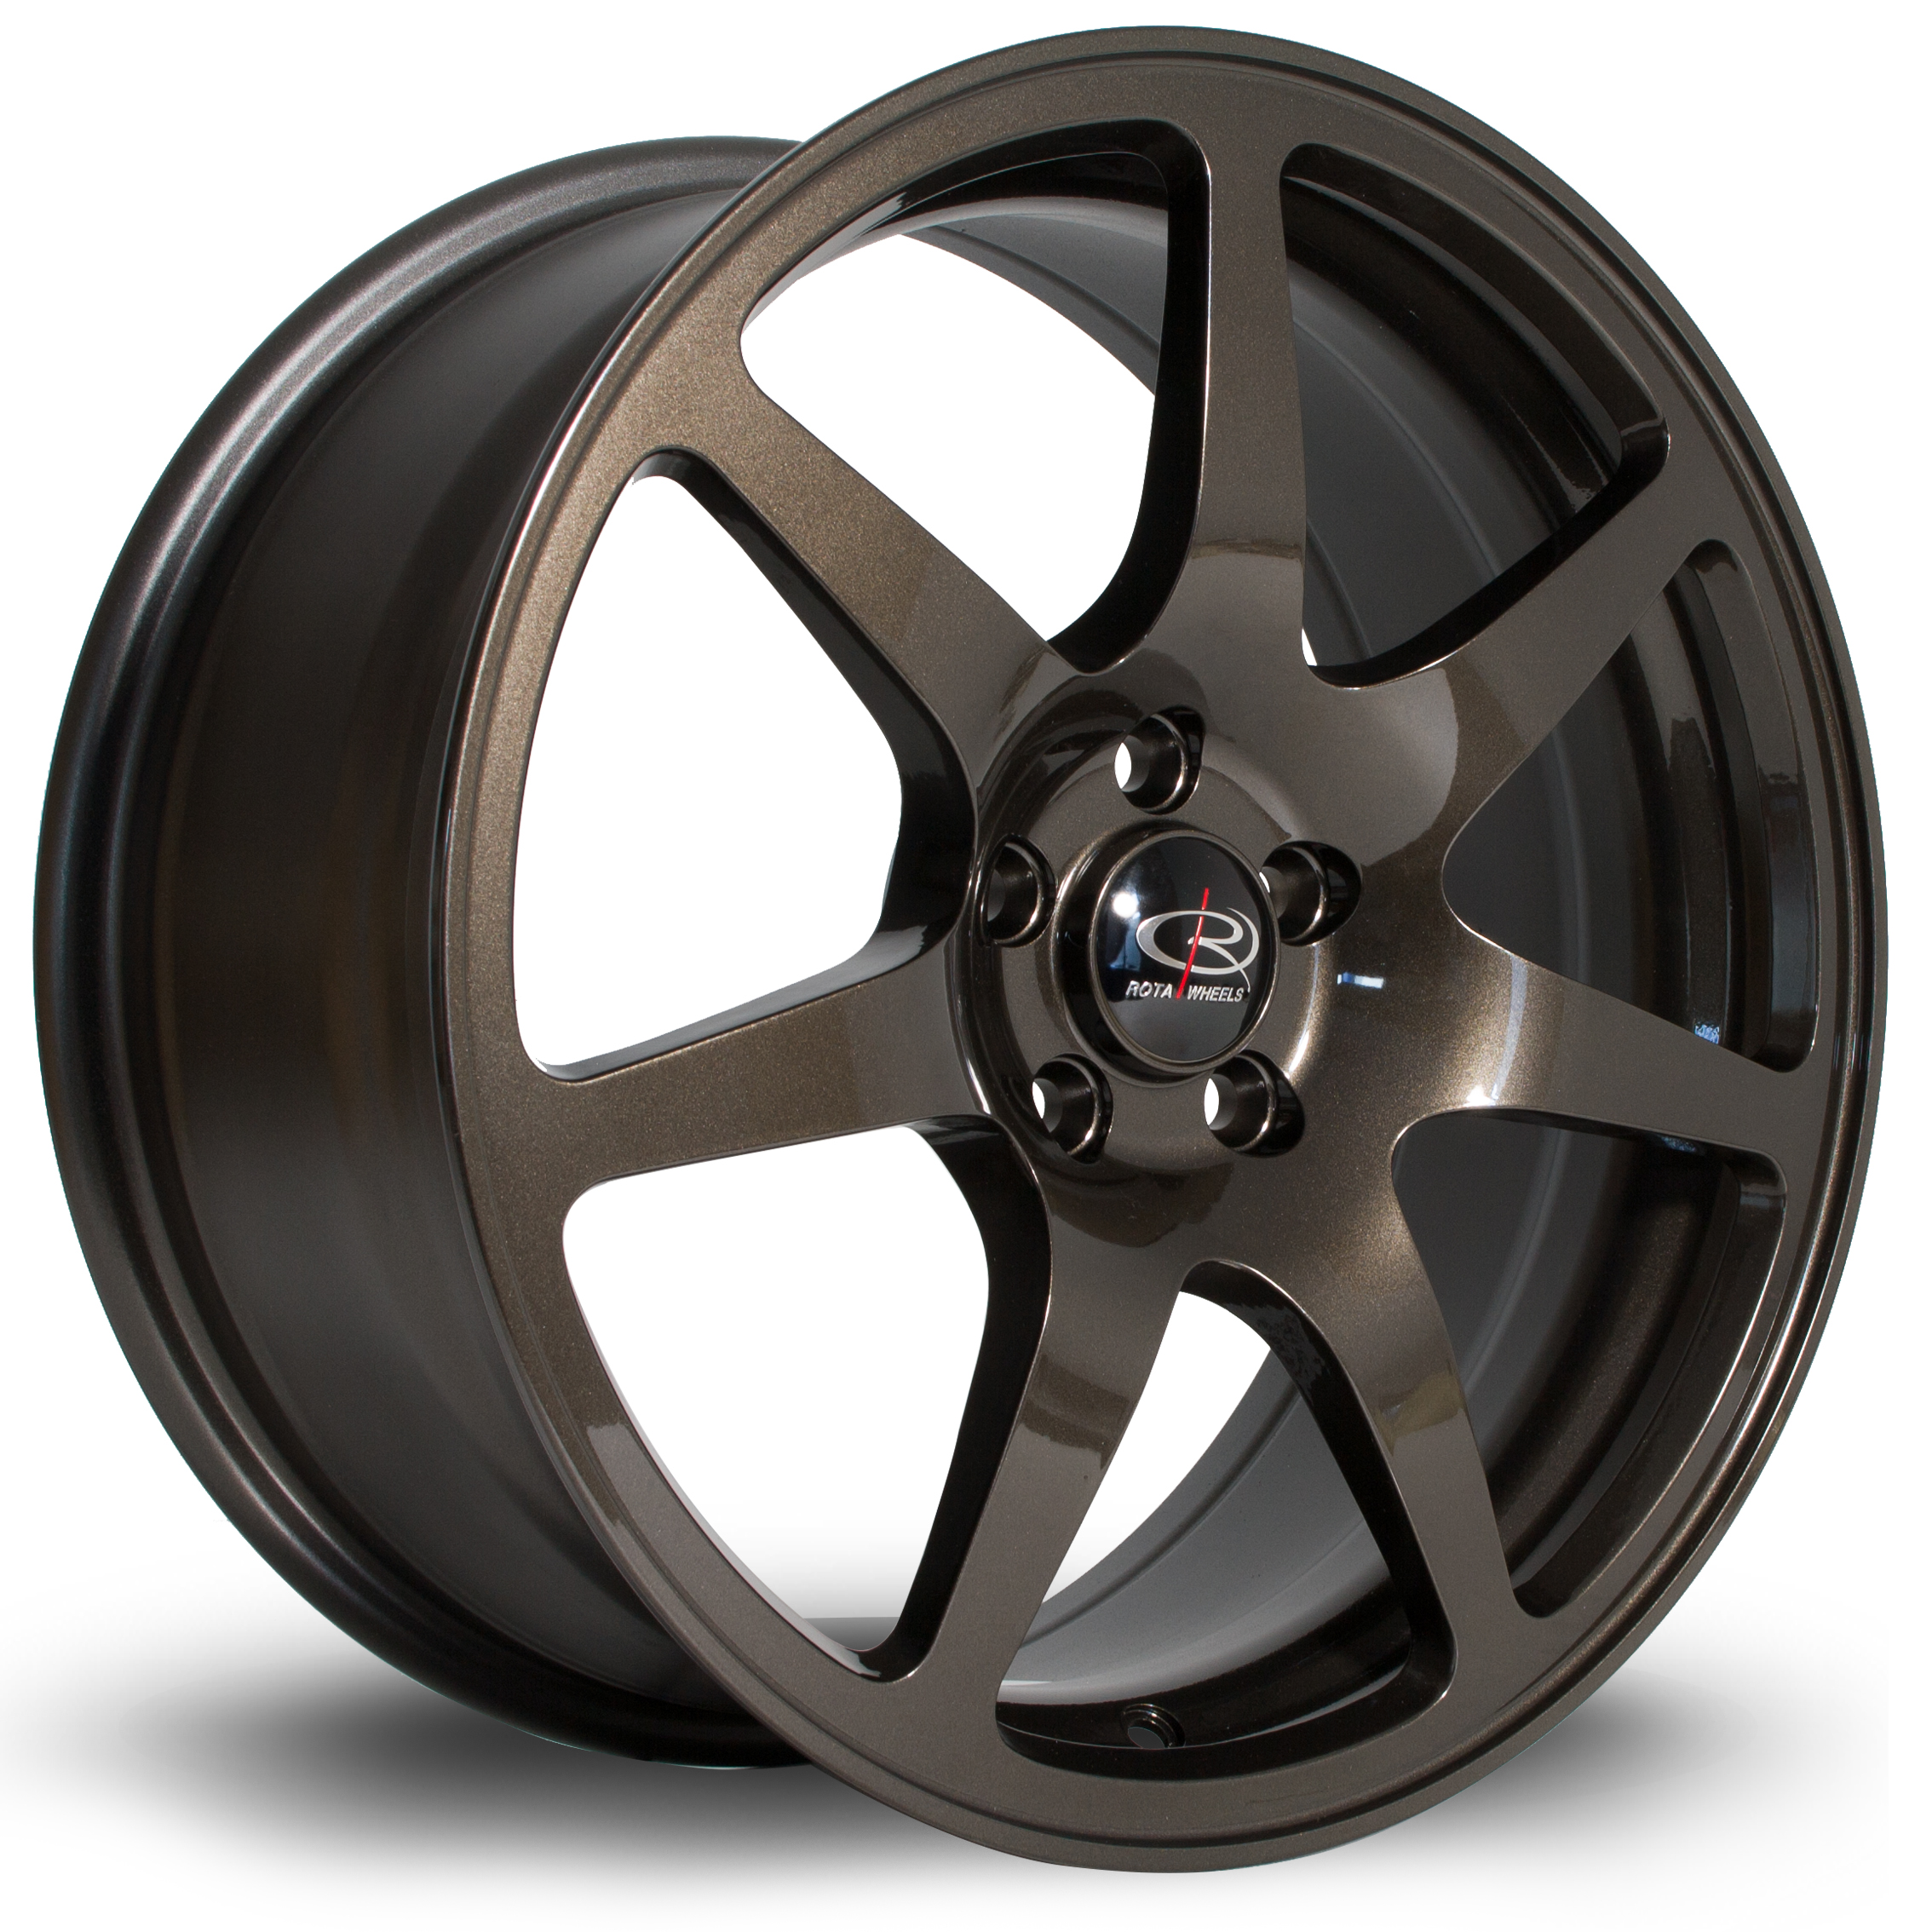 Rota SDR wheels